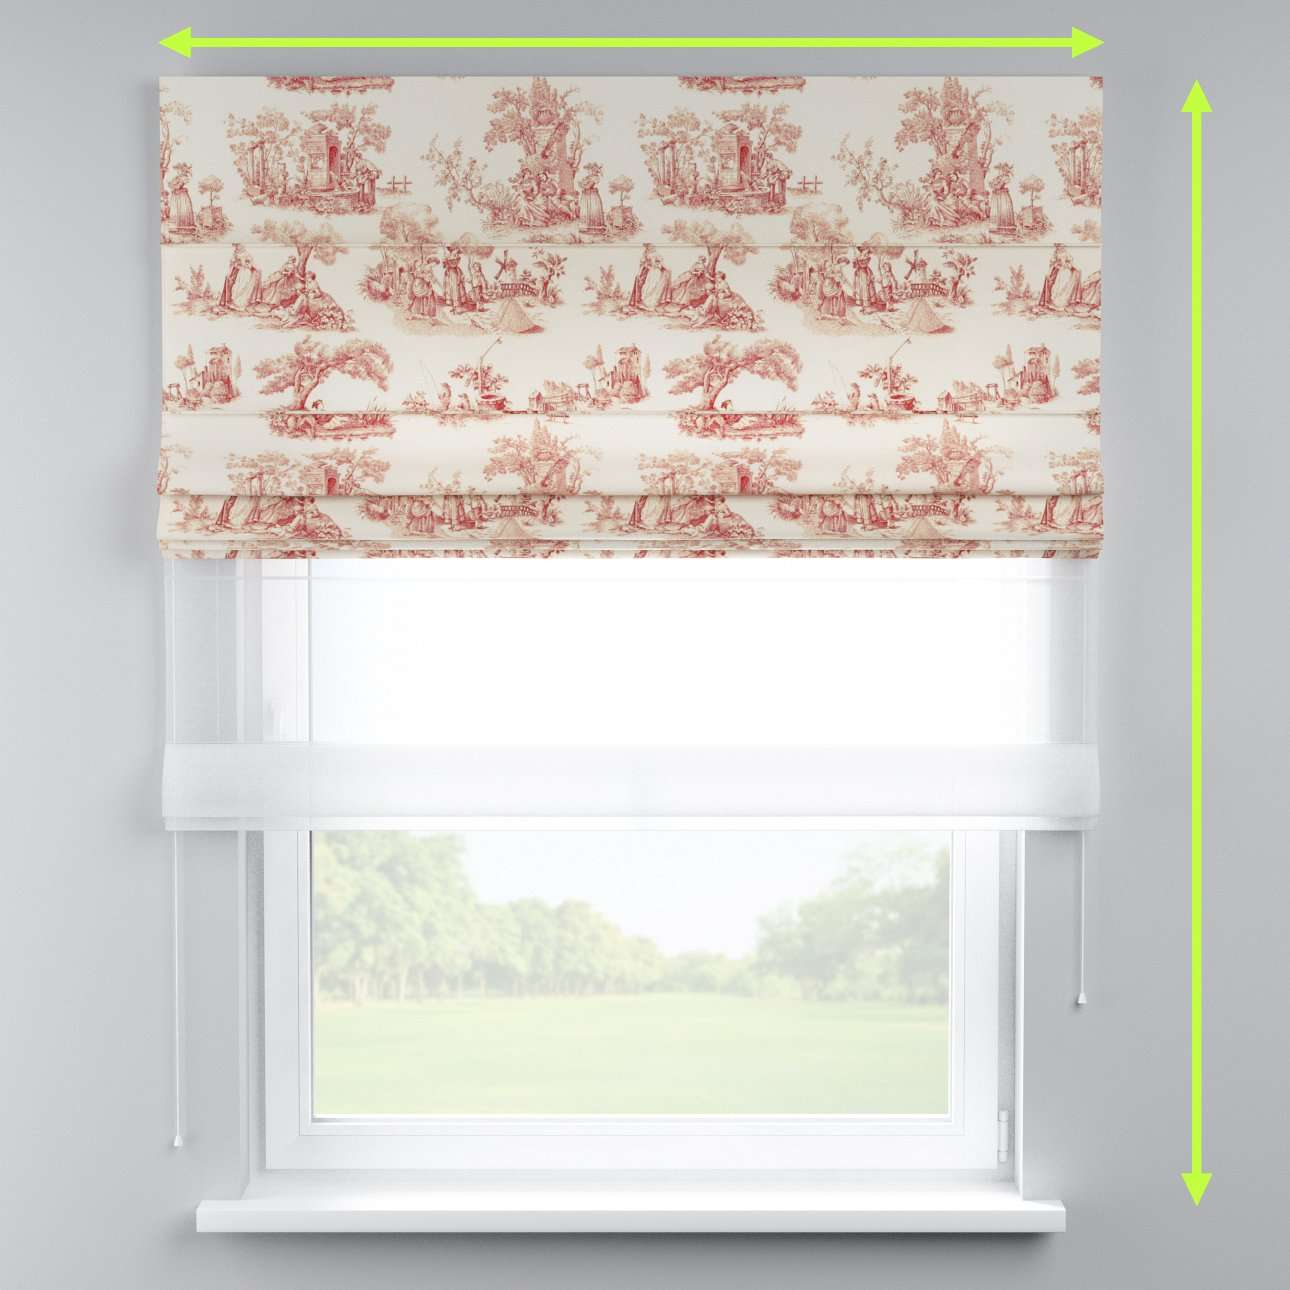 Voile and fabric roman blind (DUO II) in collection Avinon, fabric: 132-15